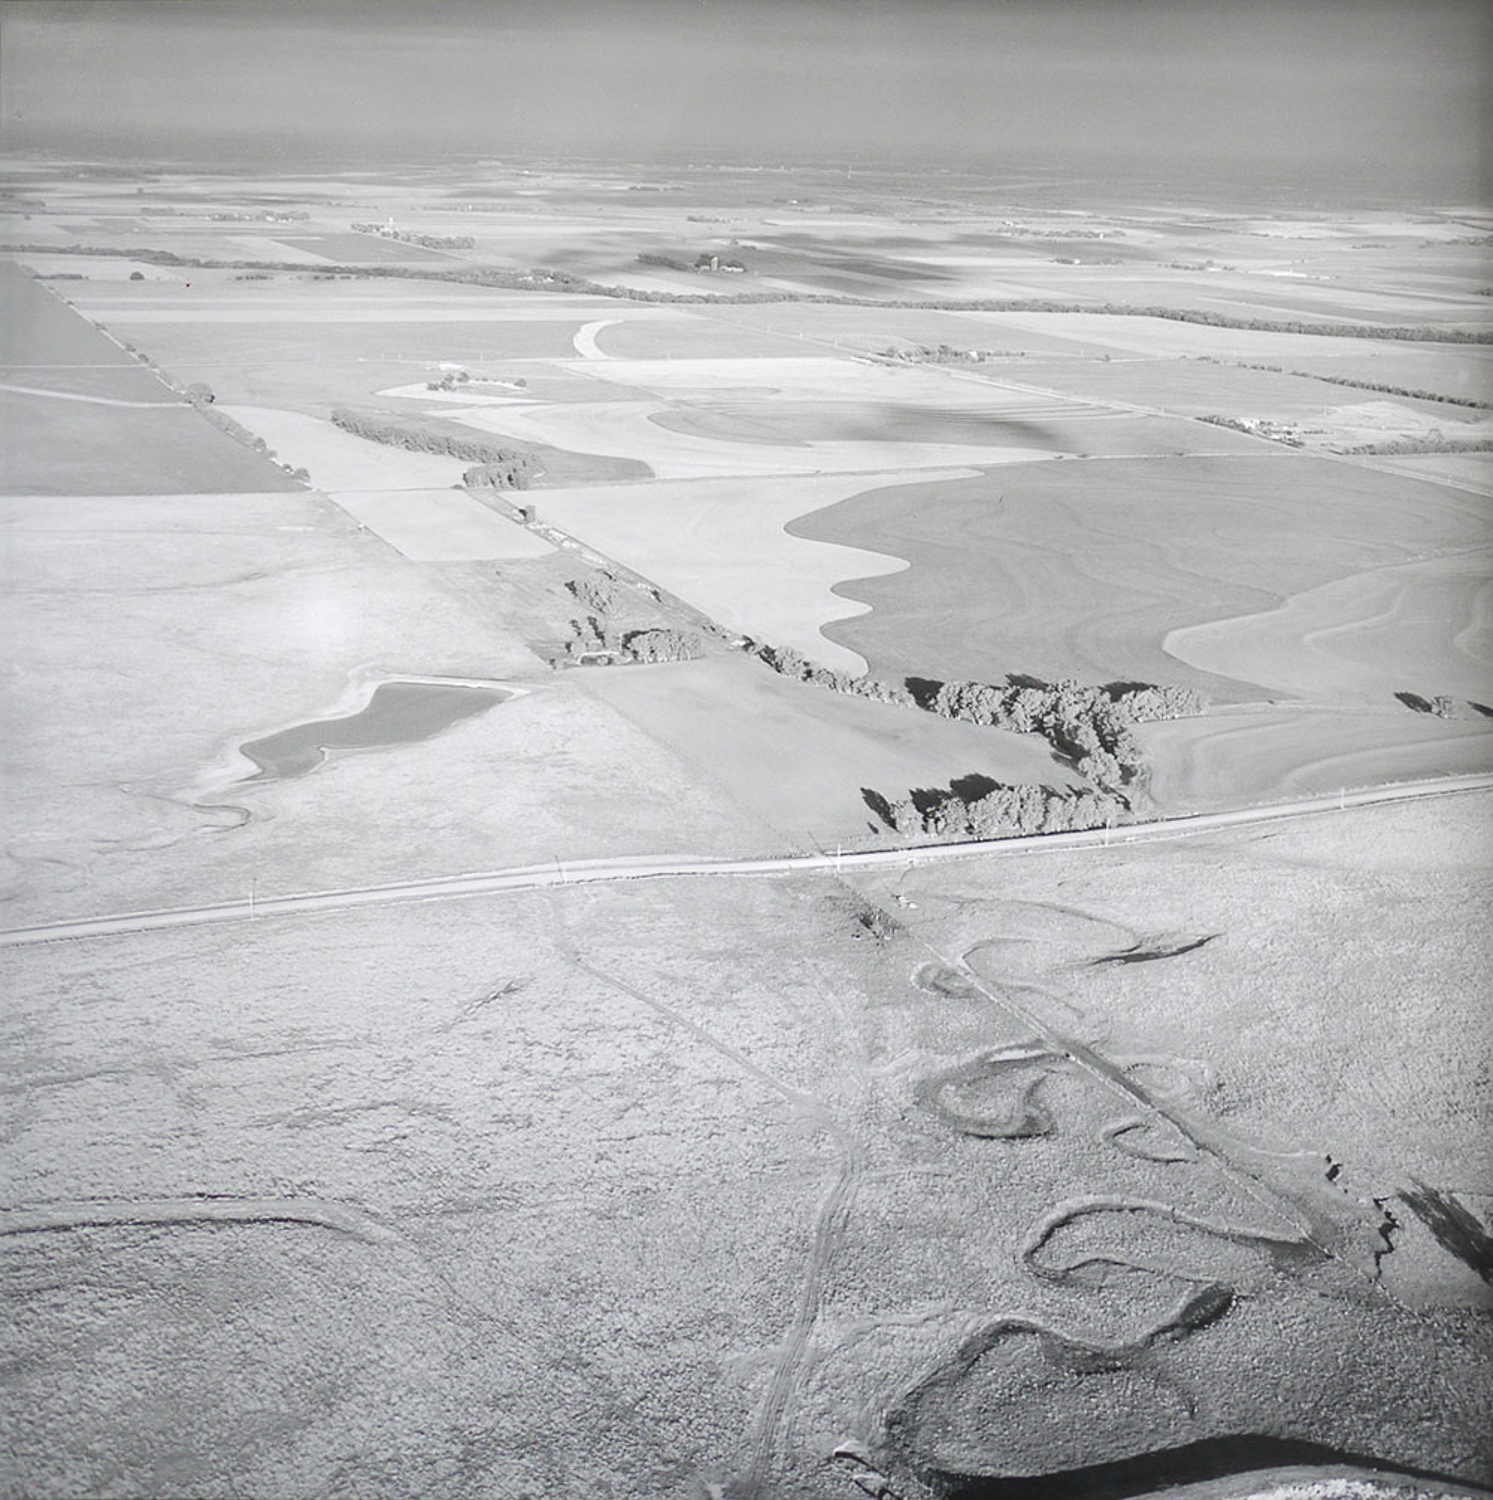 PLAIN_WITH_RIVER_BED_MAY_8_1991.jpg